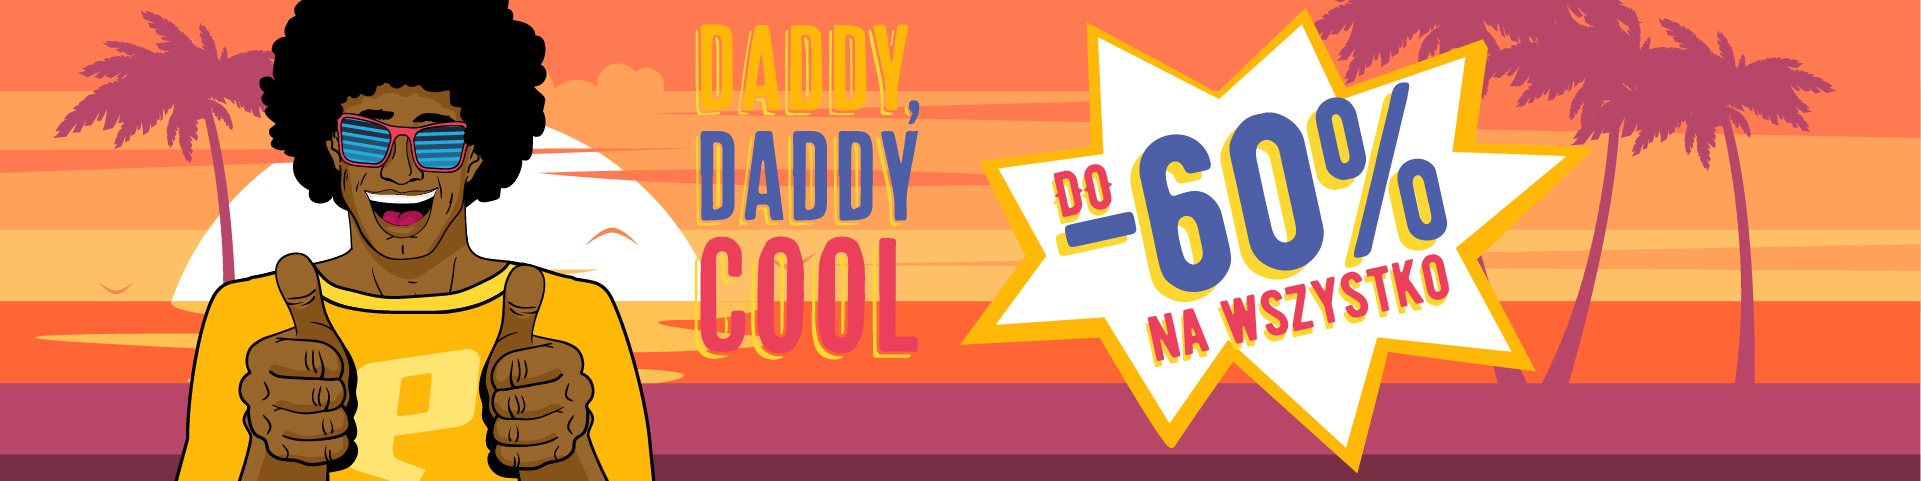 DADDY COOL DO -60%